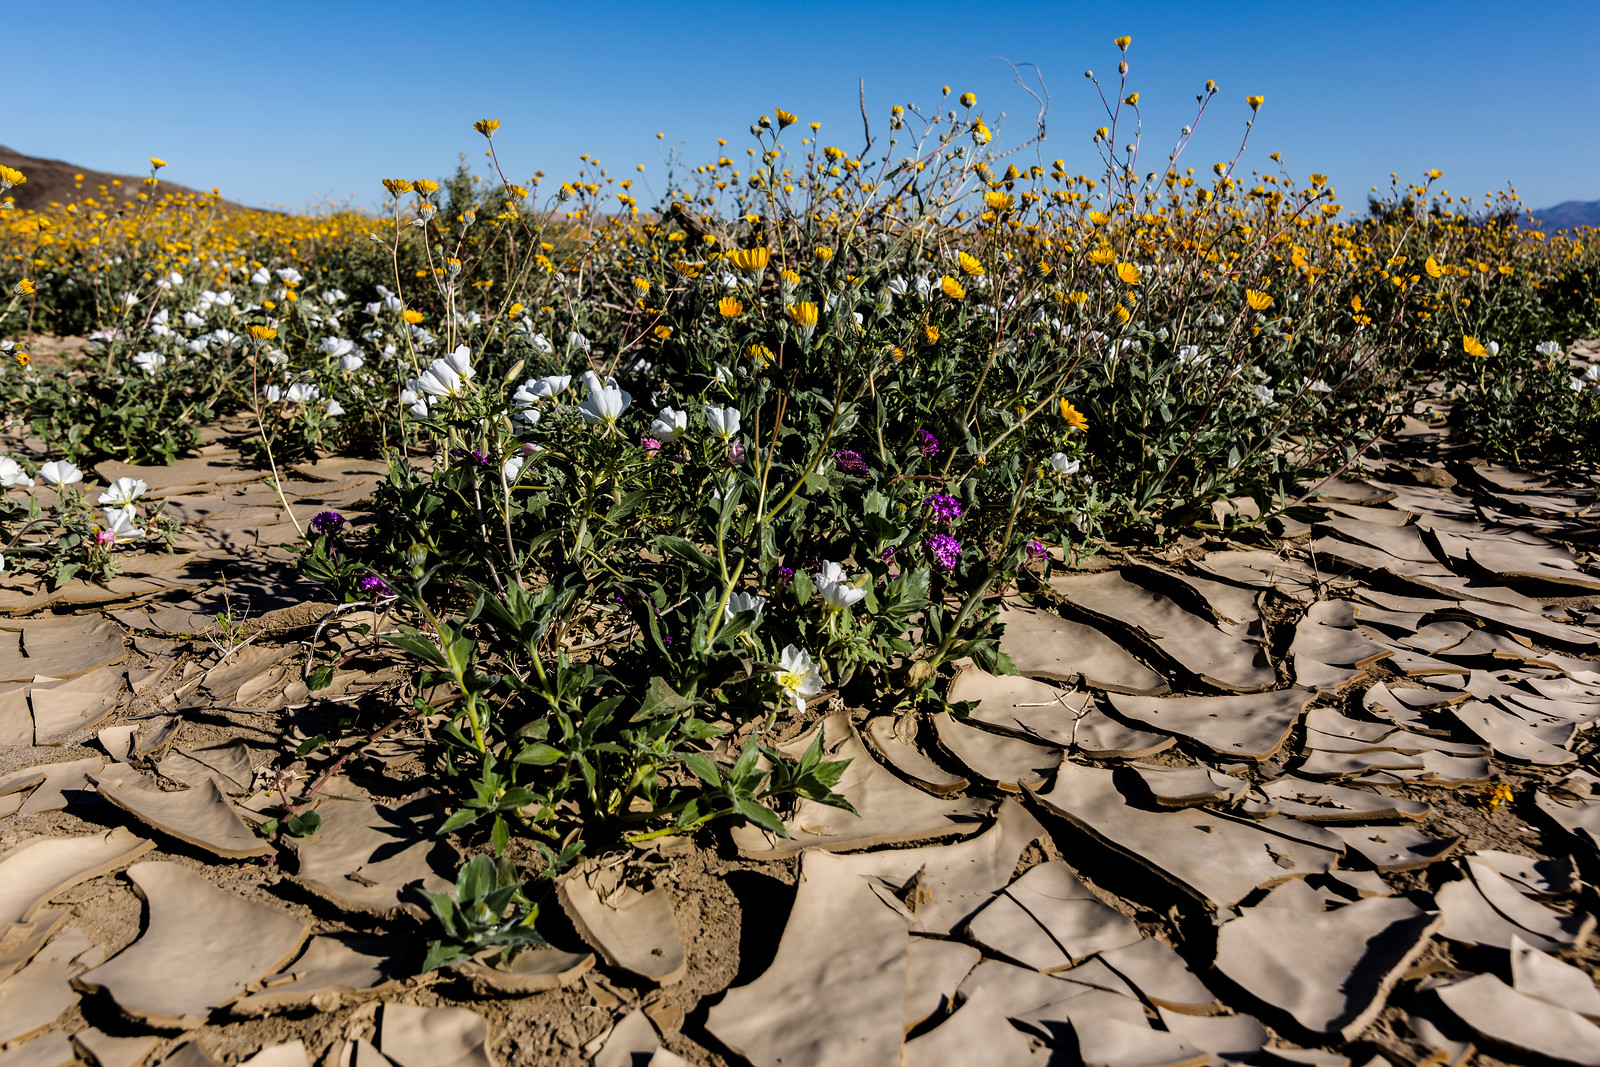 Cracked earth and wildflowers.